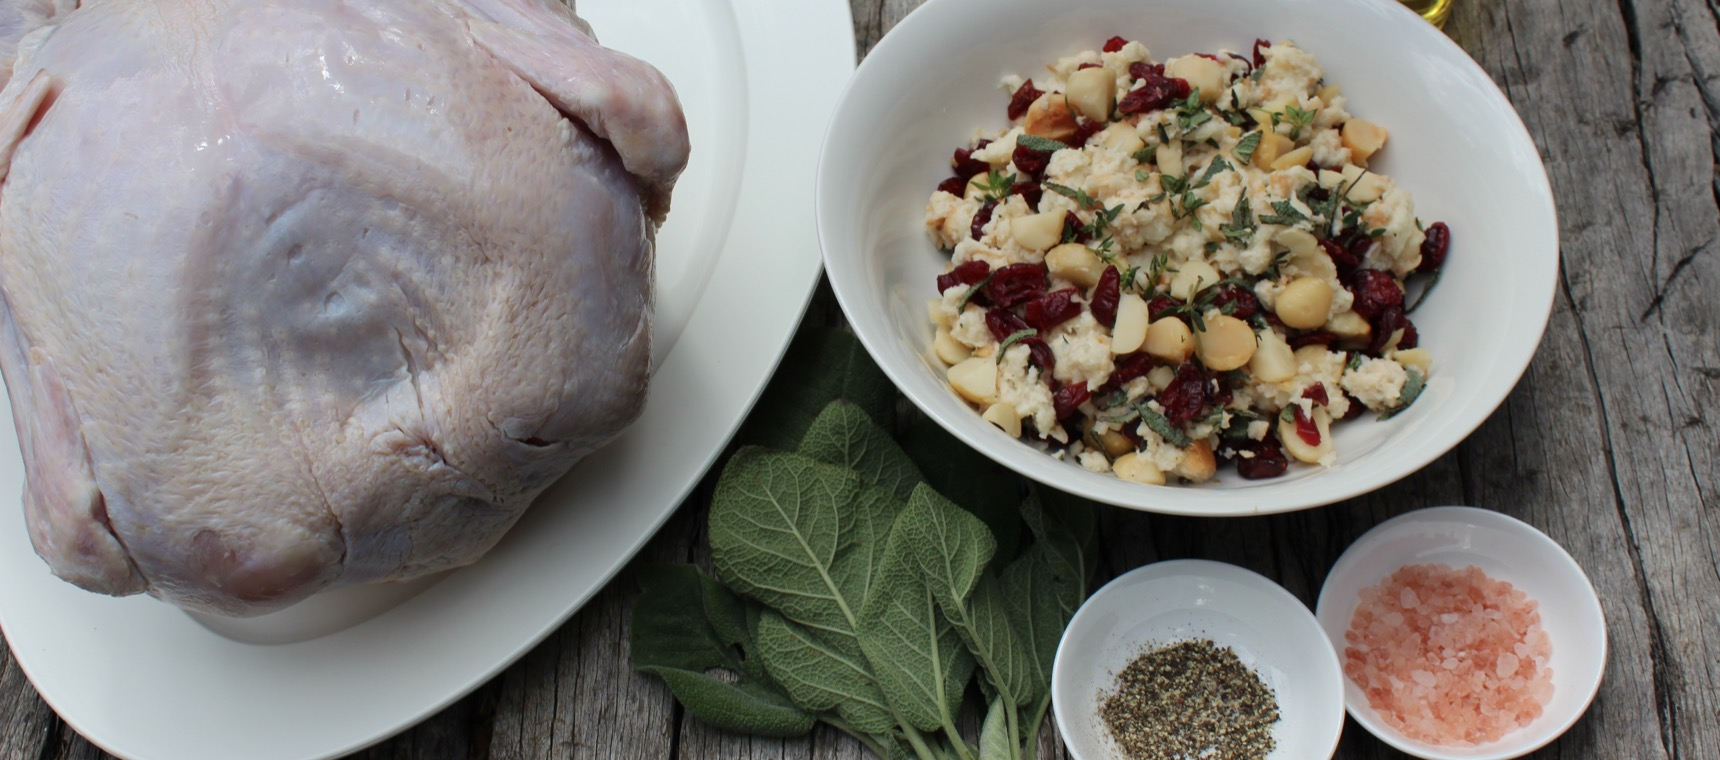 Cranberry Macadamia Stuffed Turkey